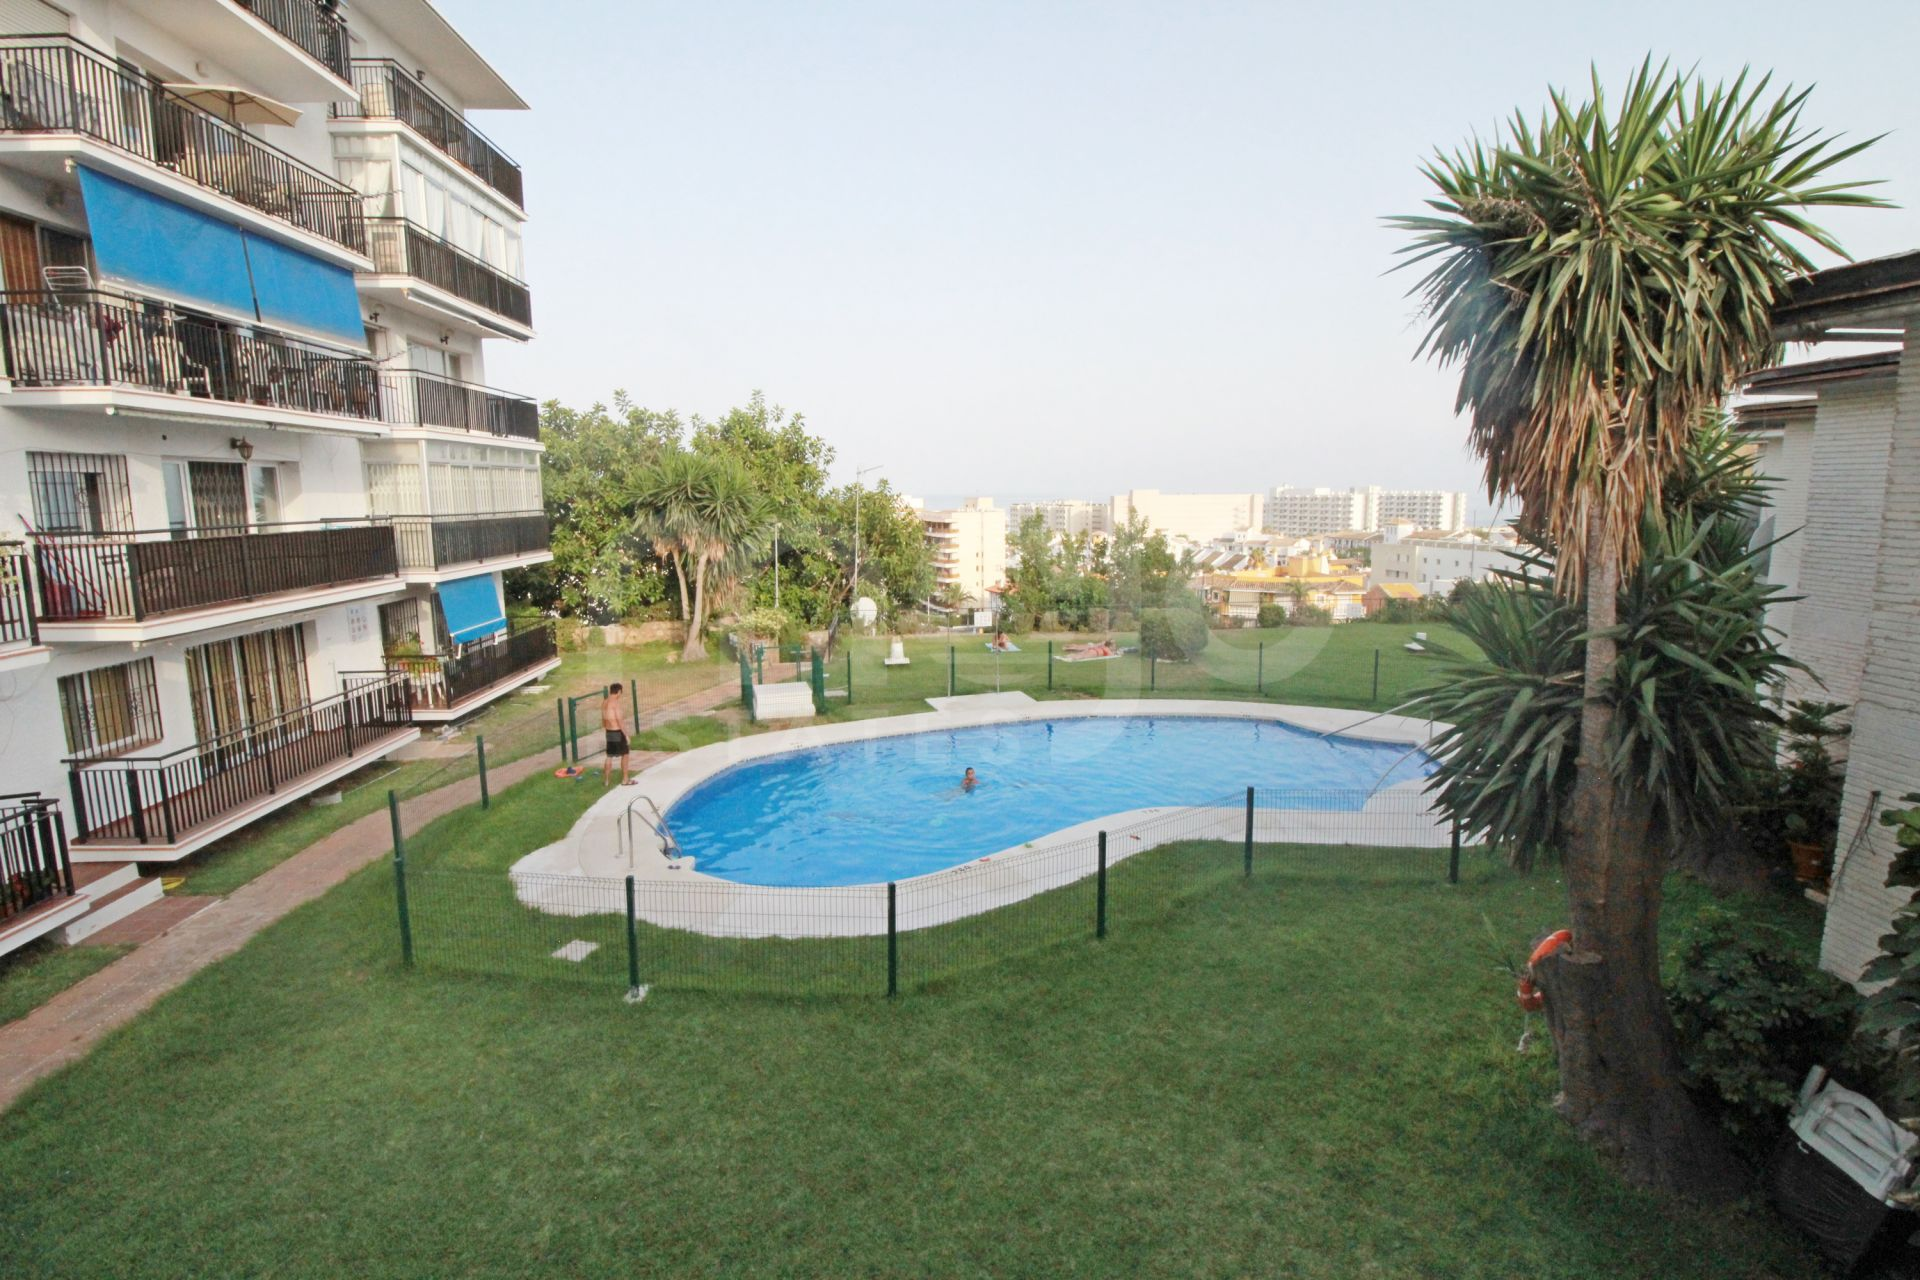 Amazing townhouse in the downtown area of Torremolinos